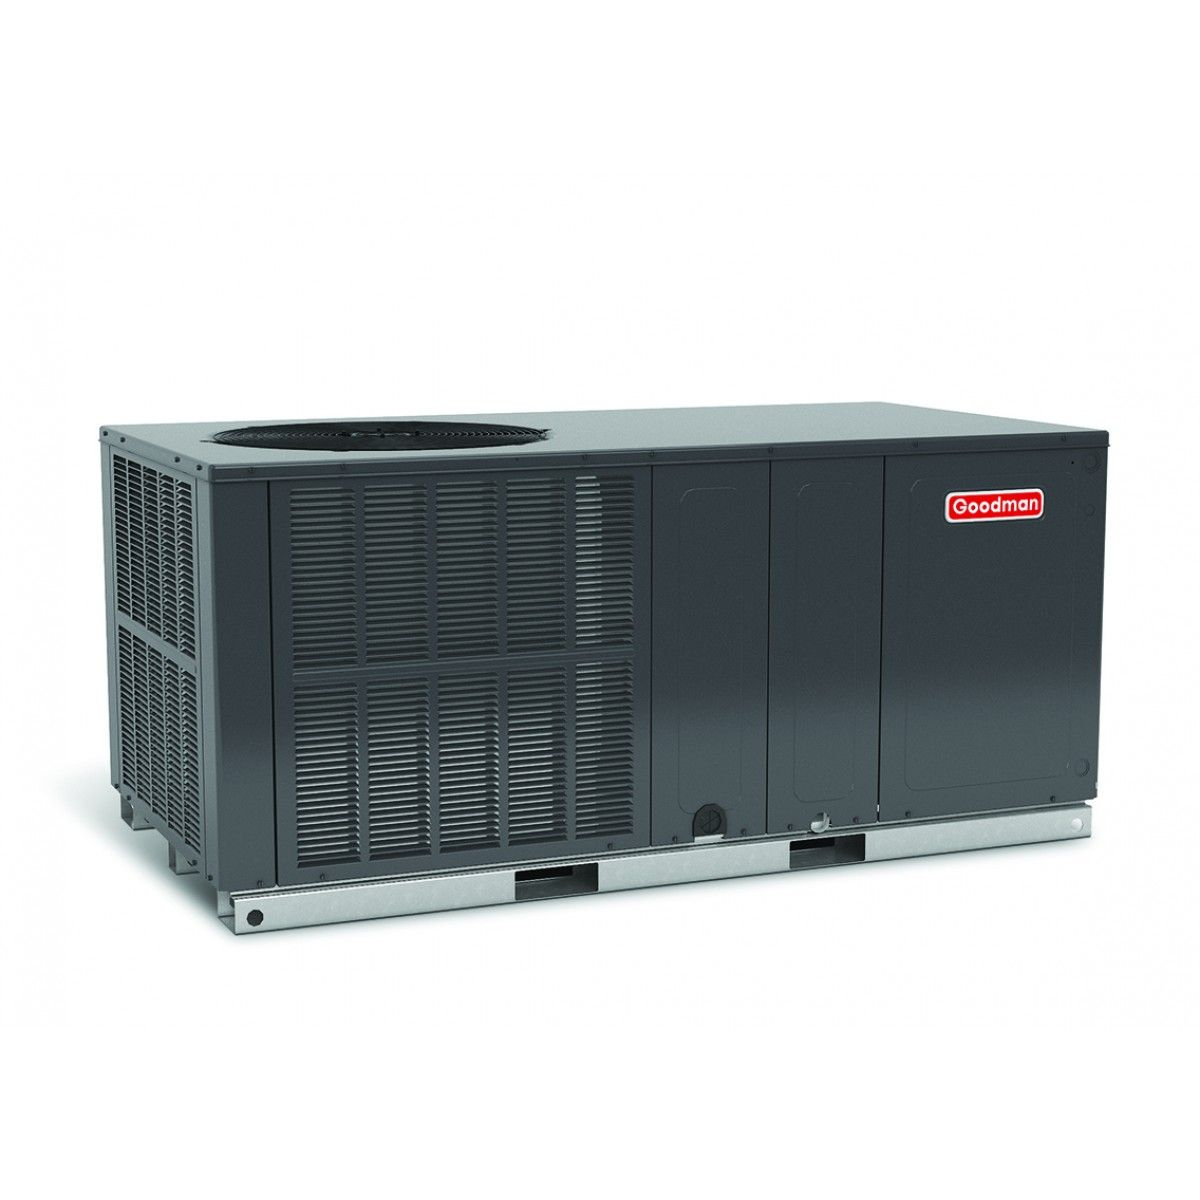 Goodman 4 0 Ton 14 Seer Heat Pump Package Unit Horizontal